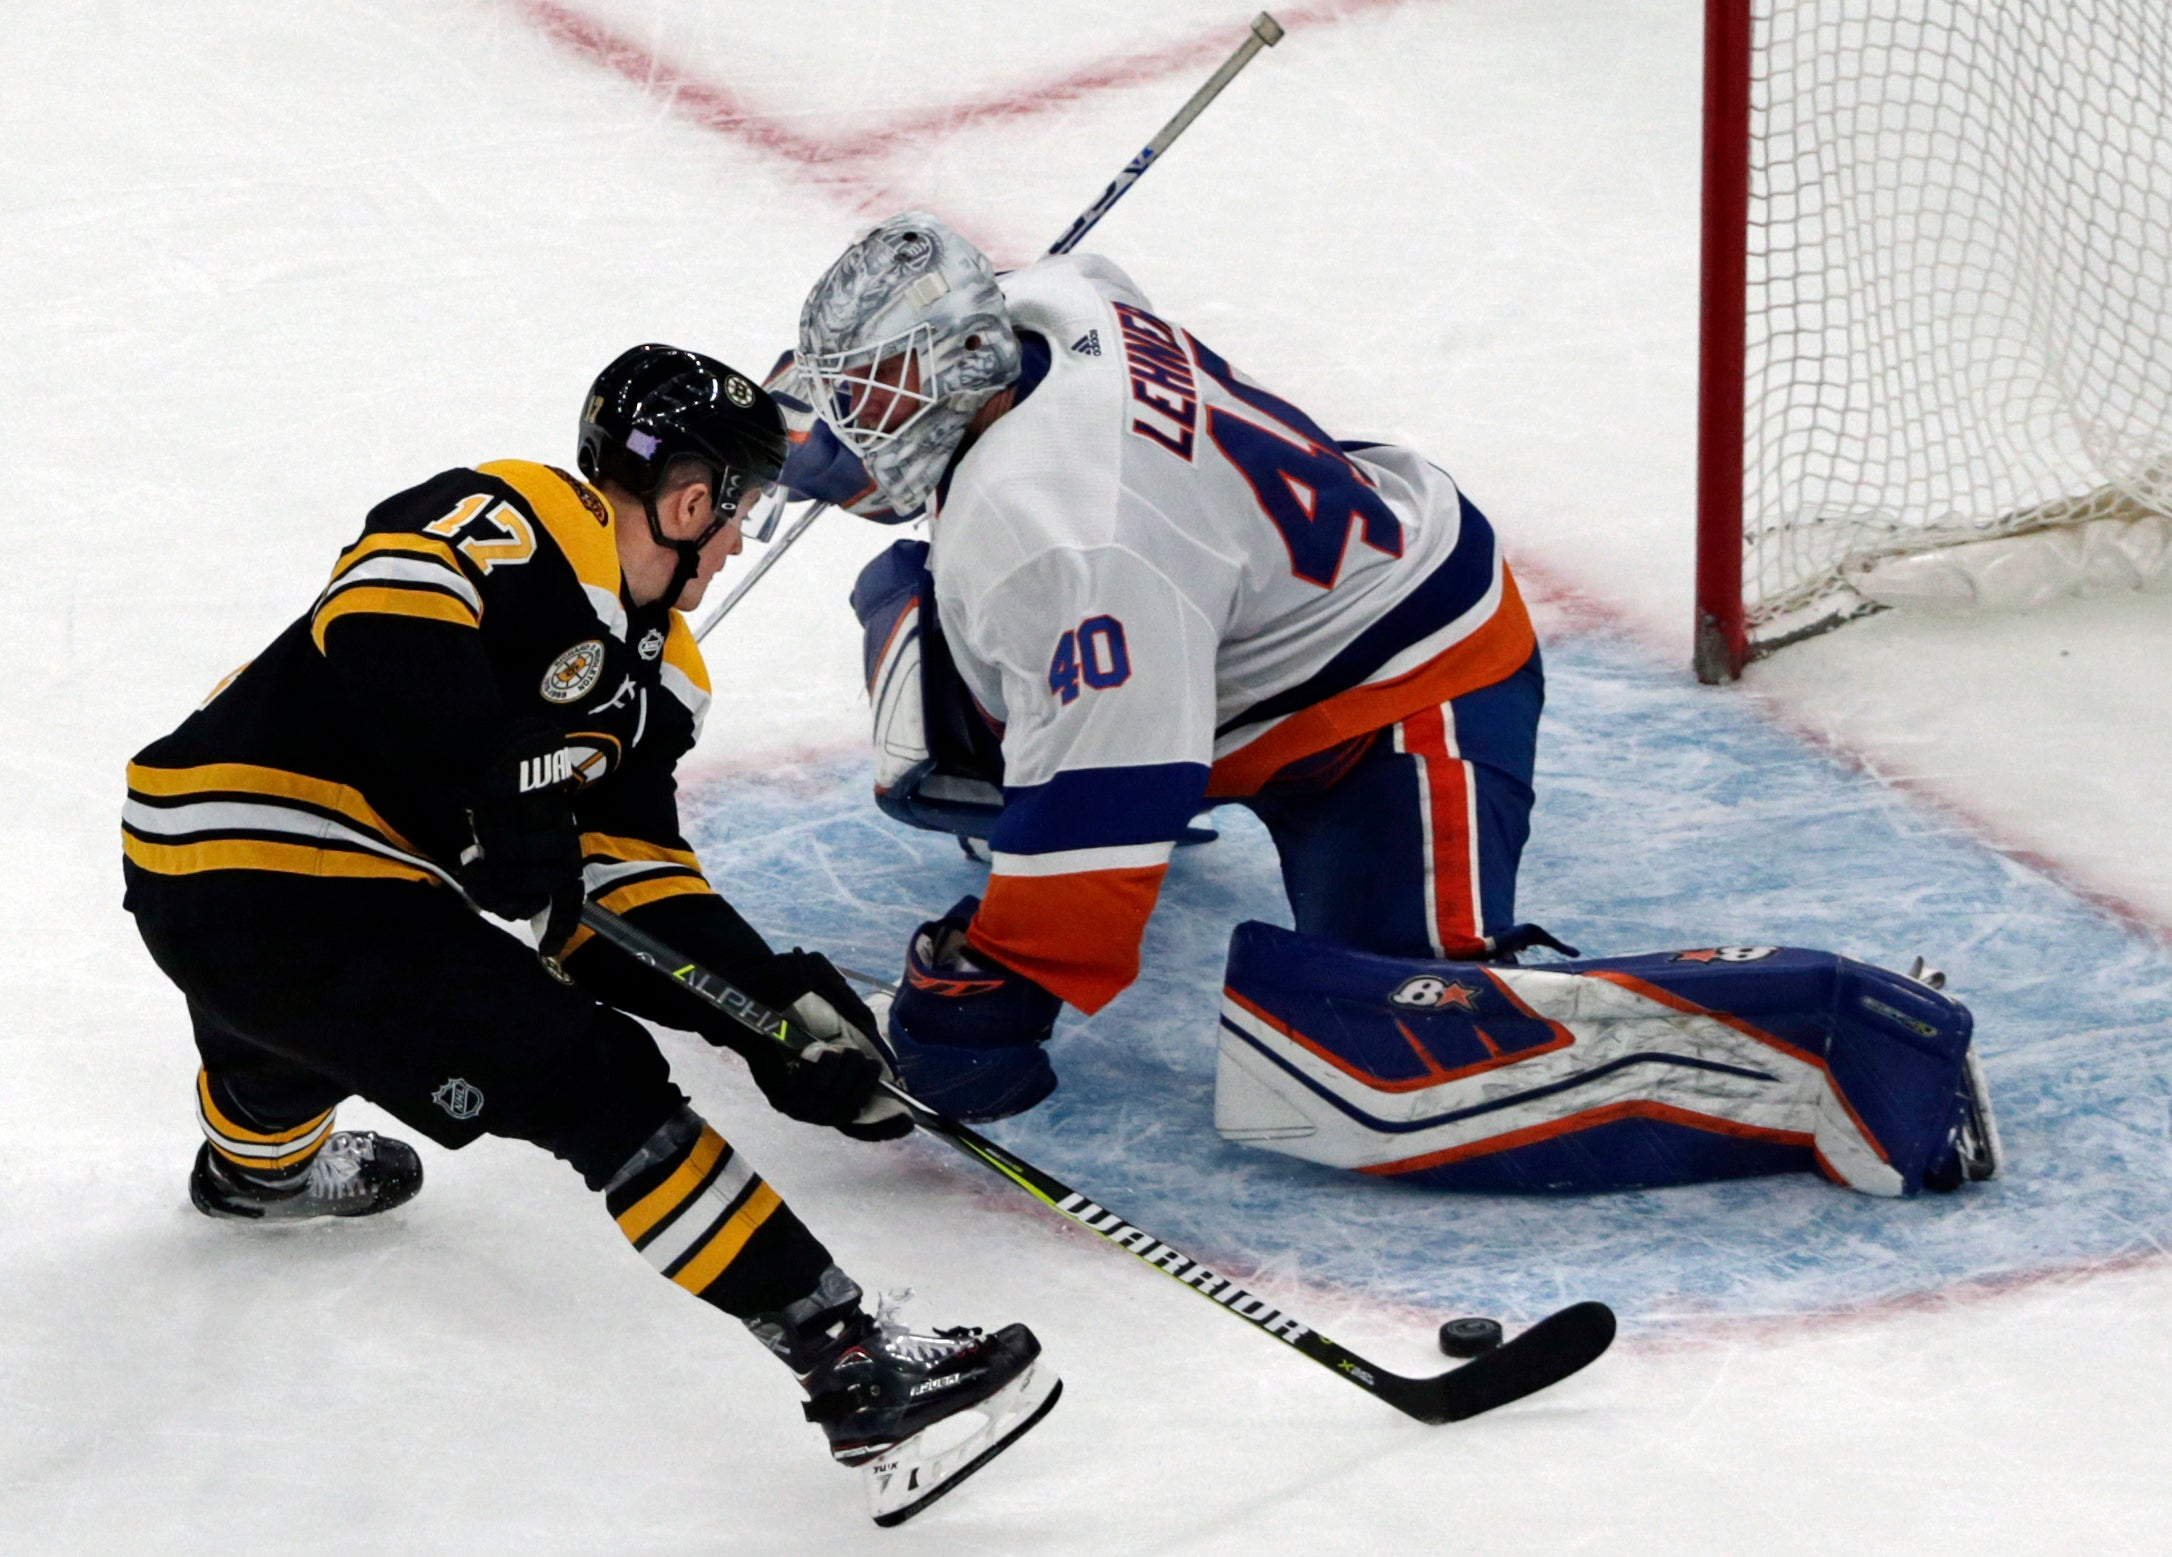 Ryan Donato scores during the shootout to give the Bruins the win.